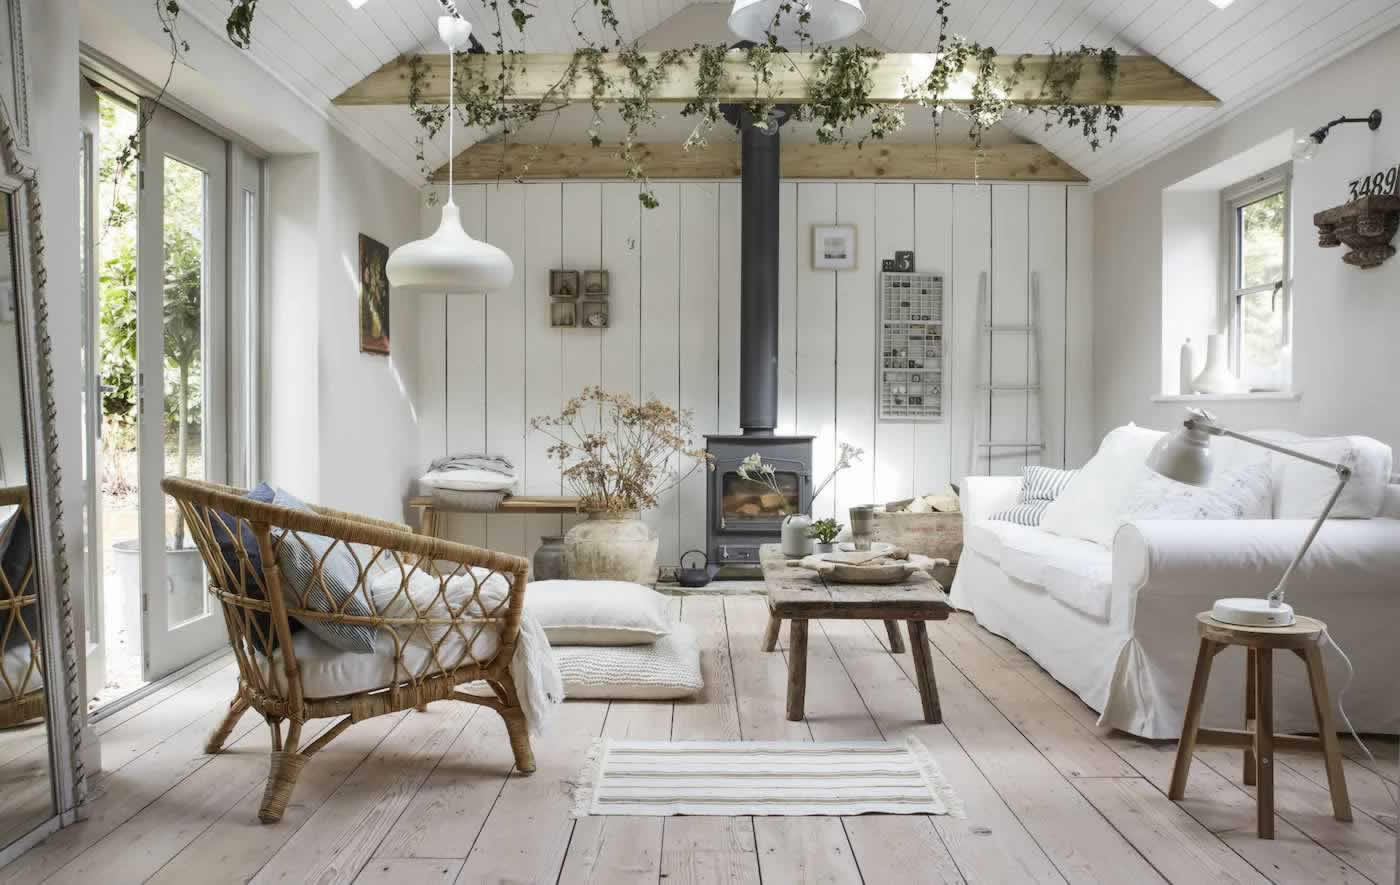 IKEA Ideas - A relaxing farmhouse in the country